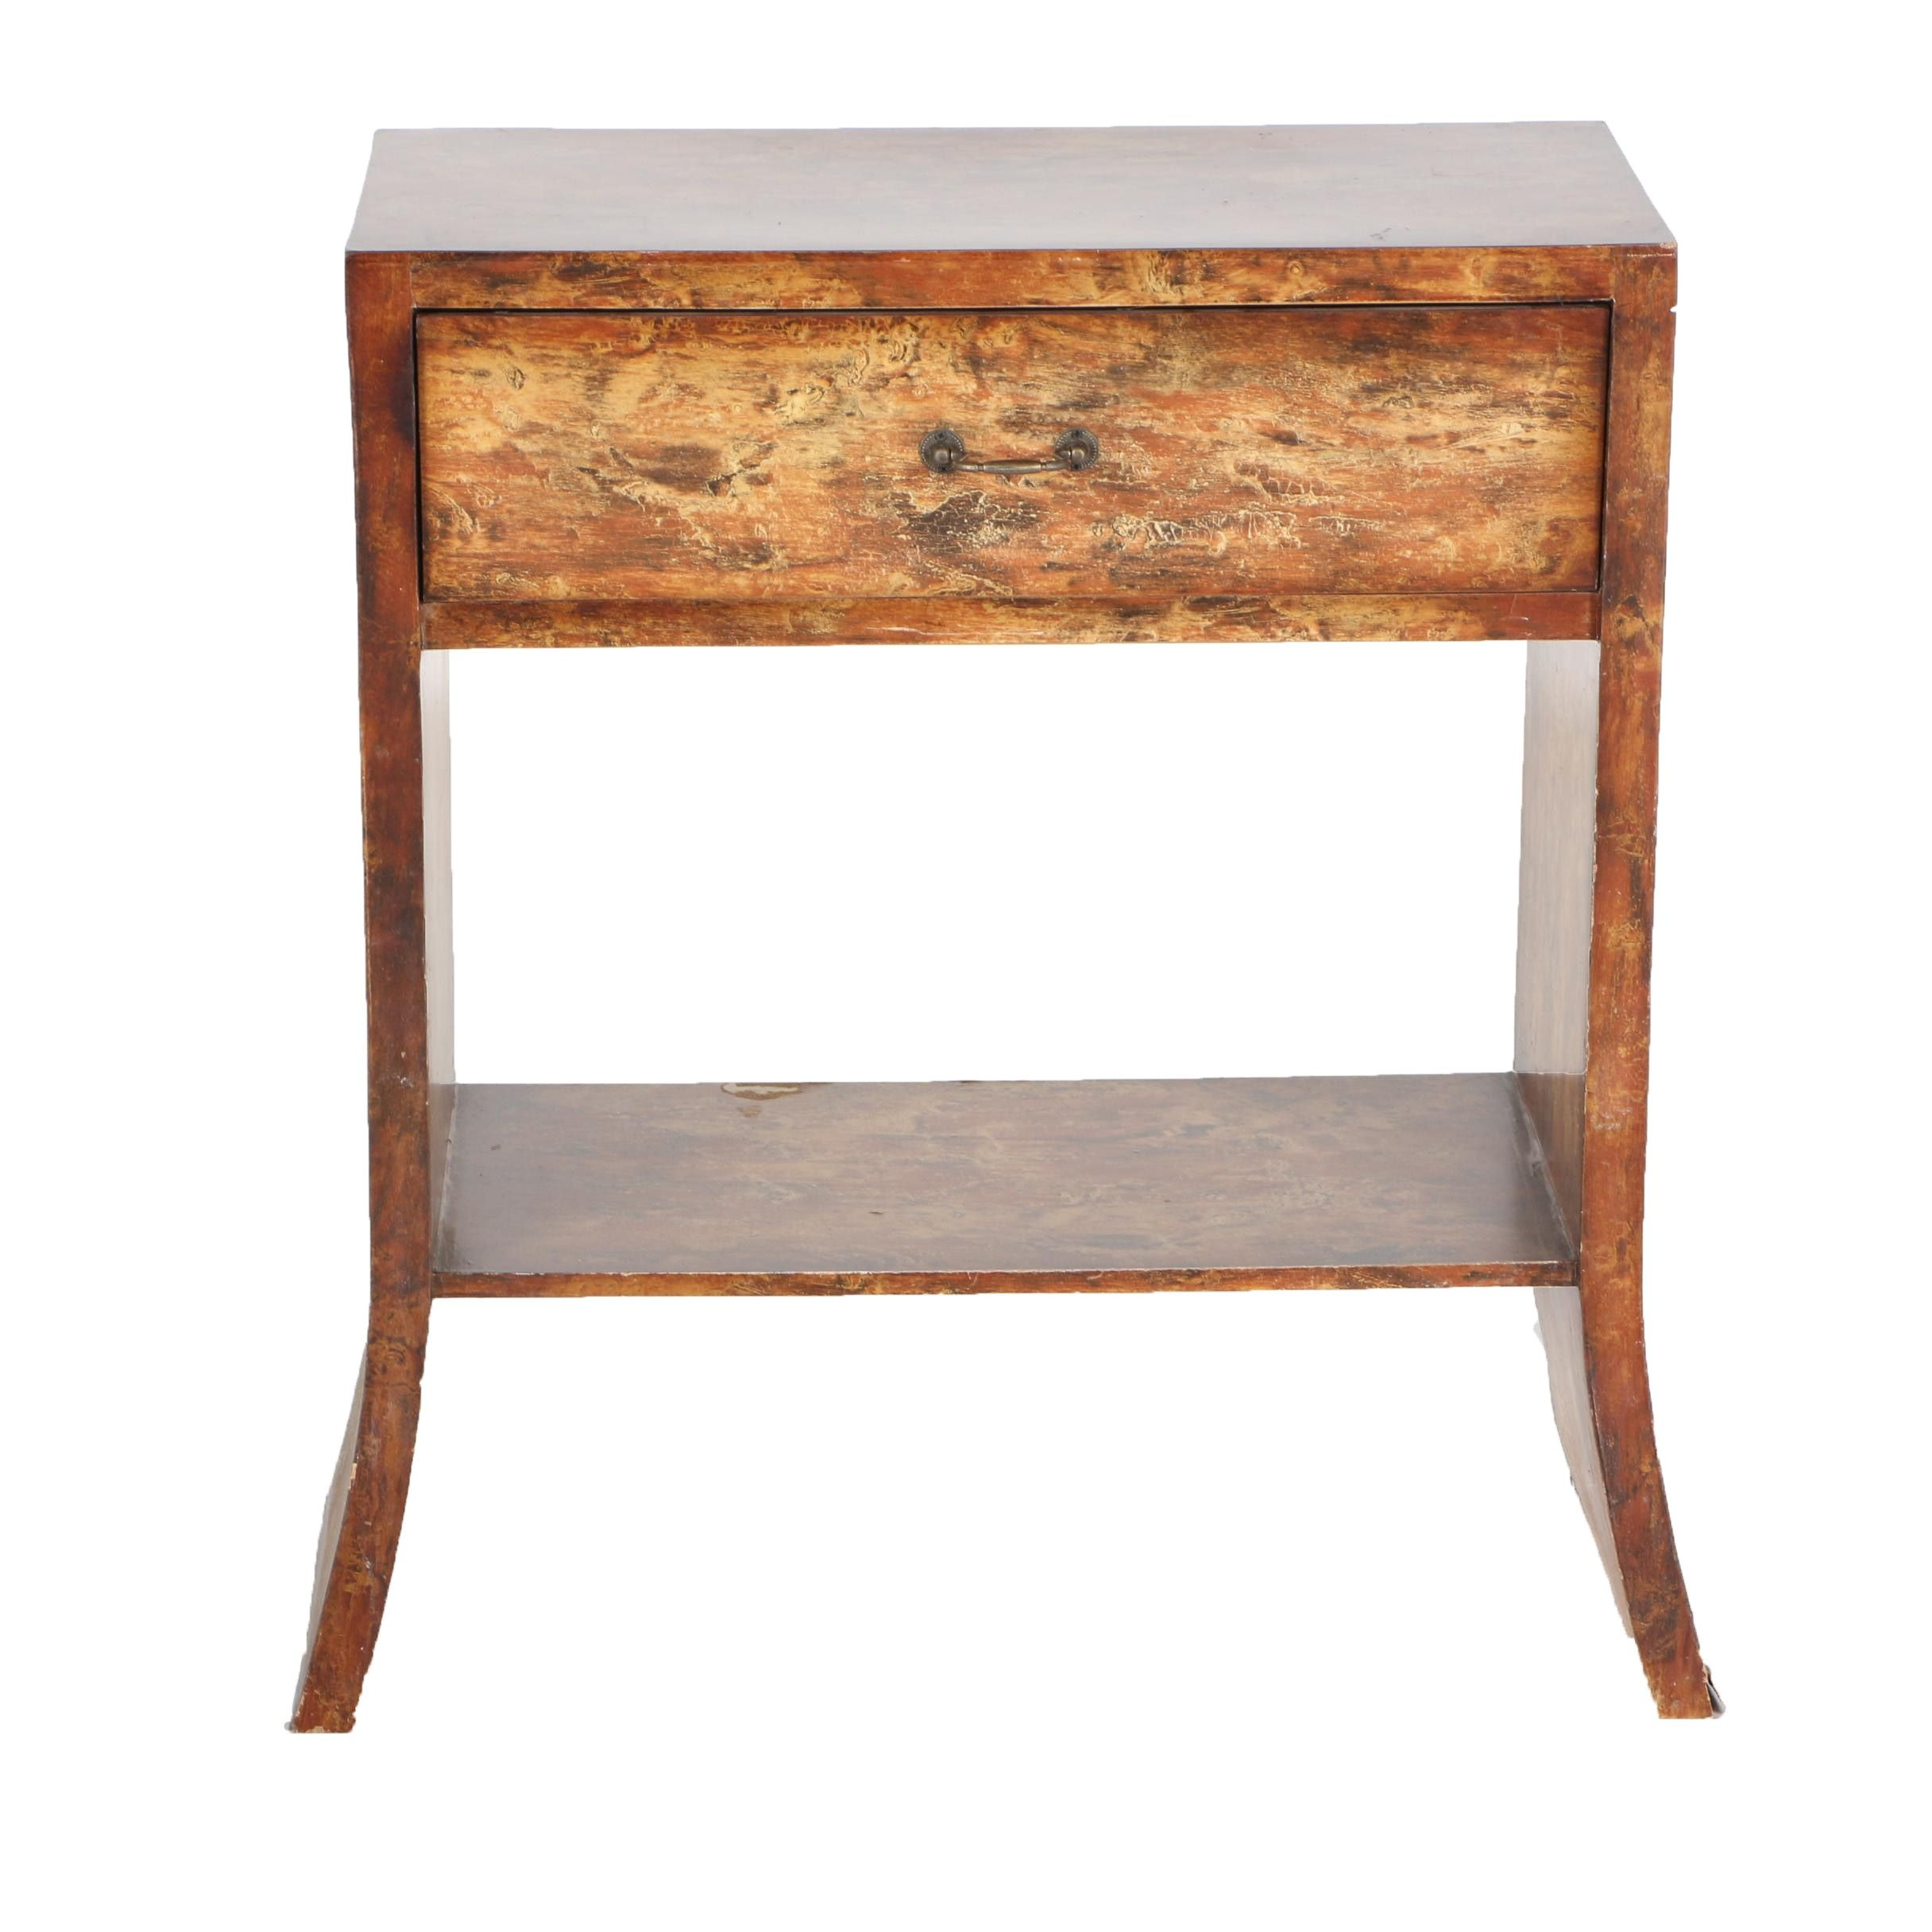 Modern Rustic Accent Table